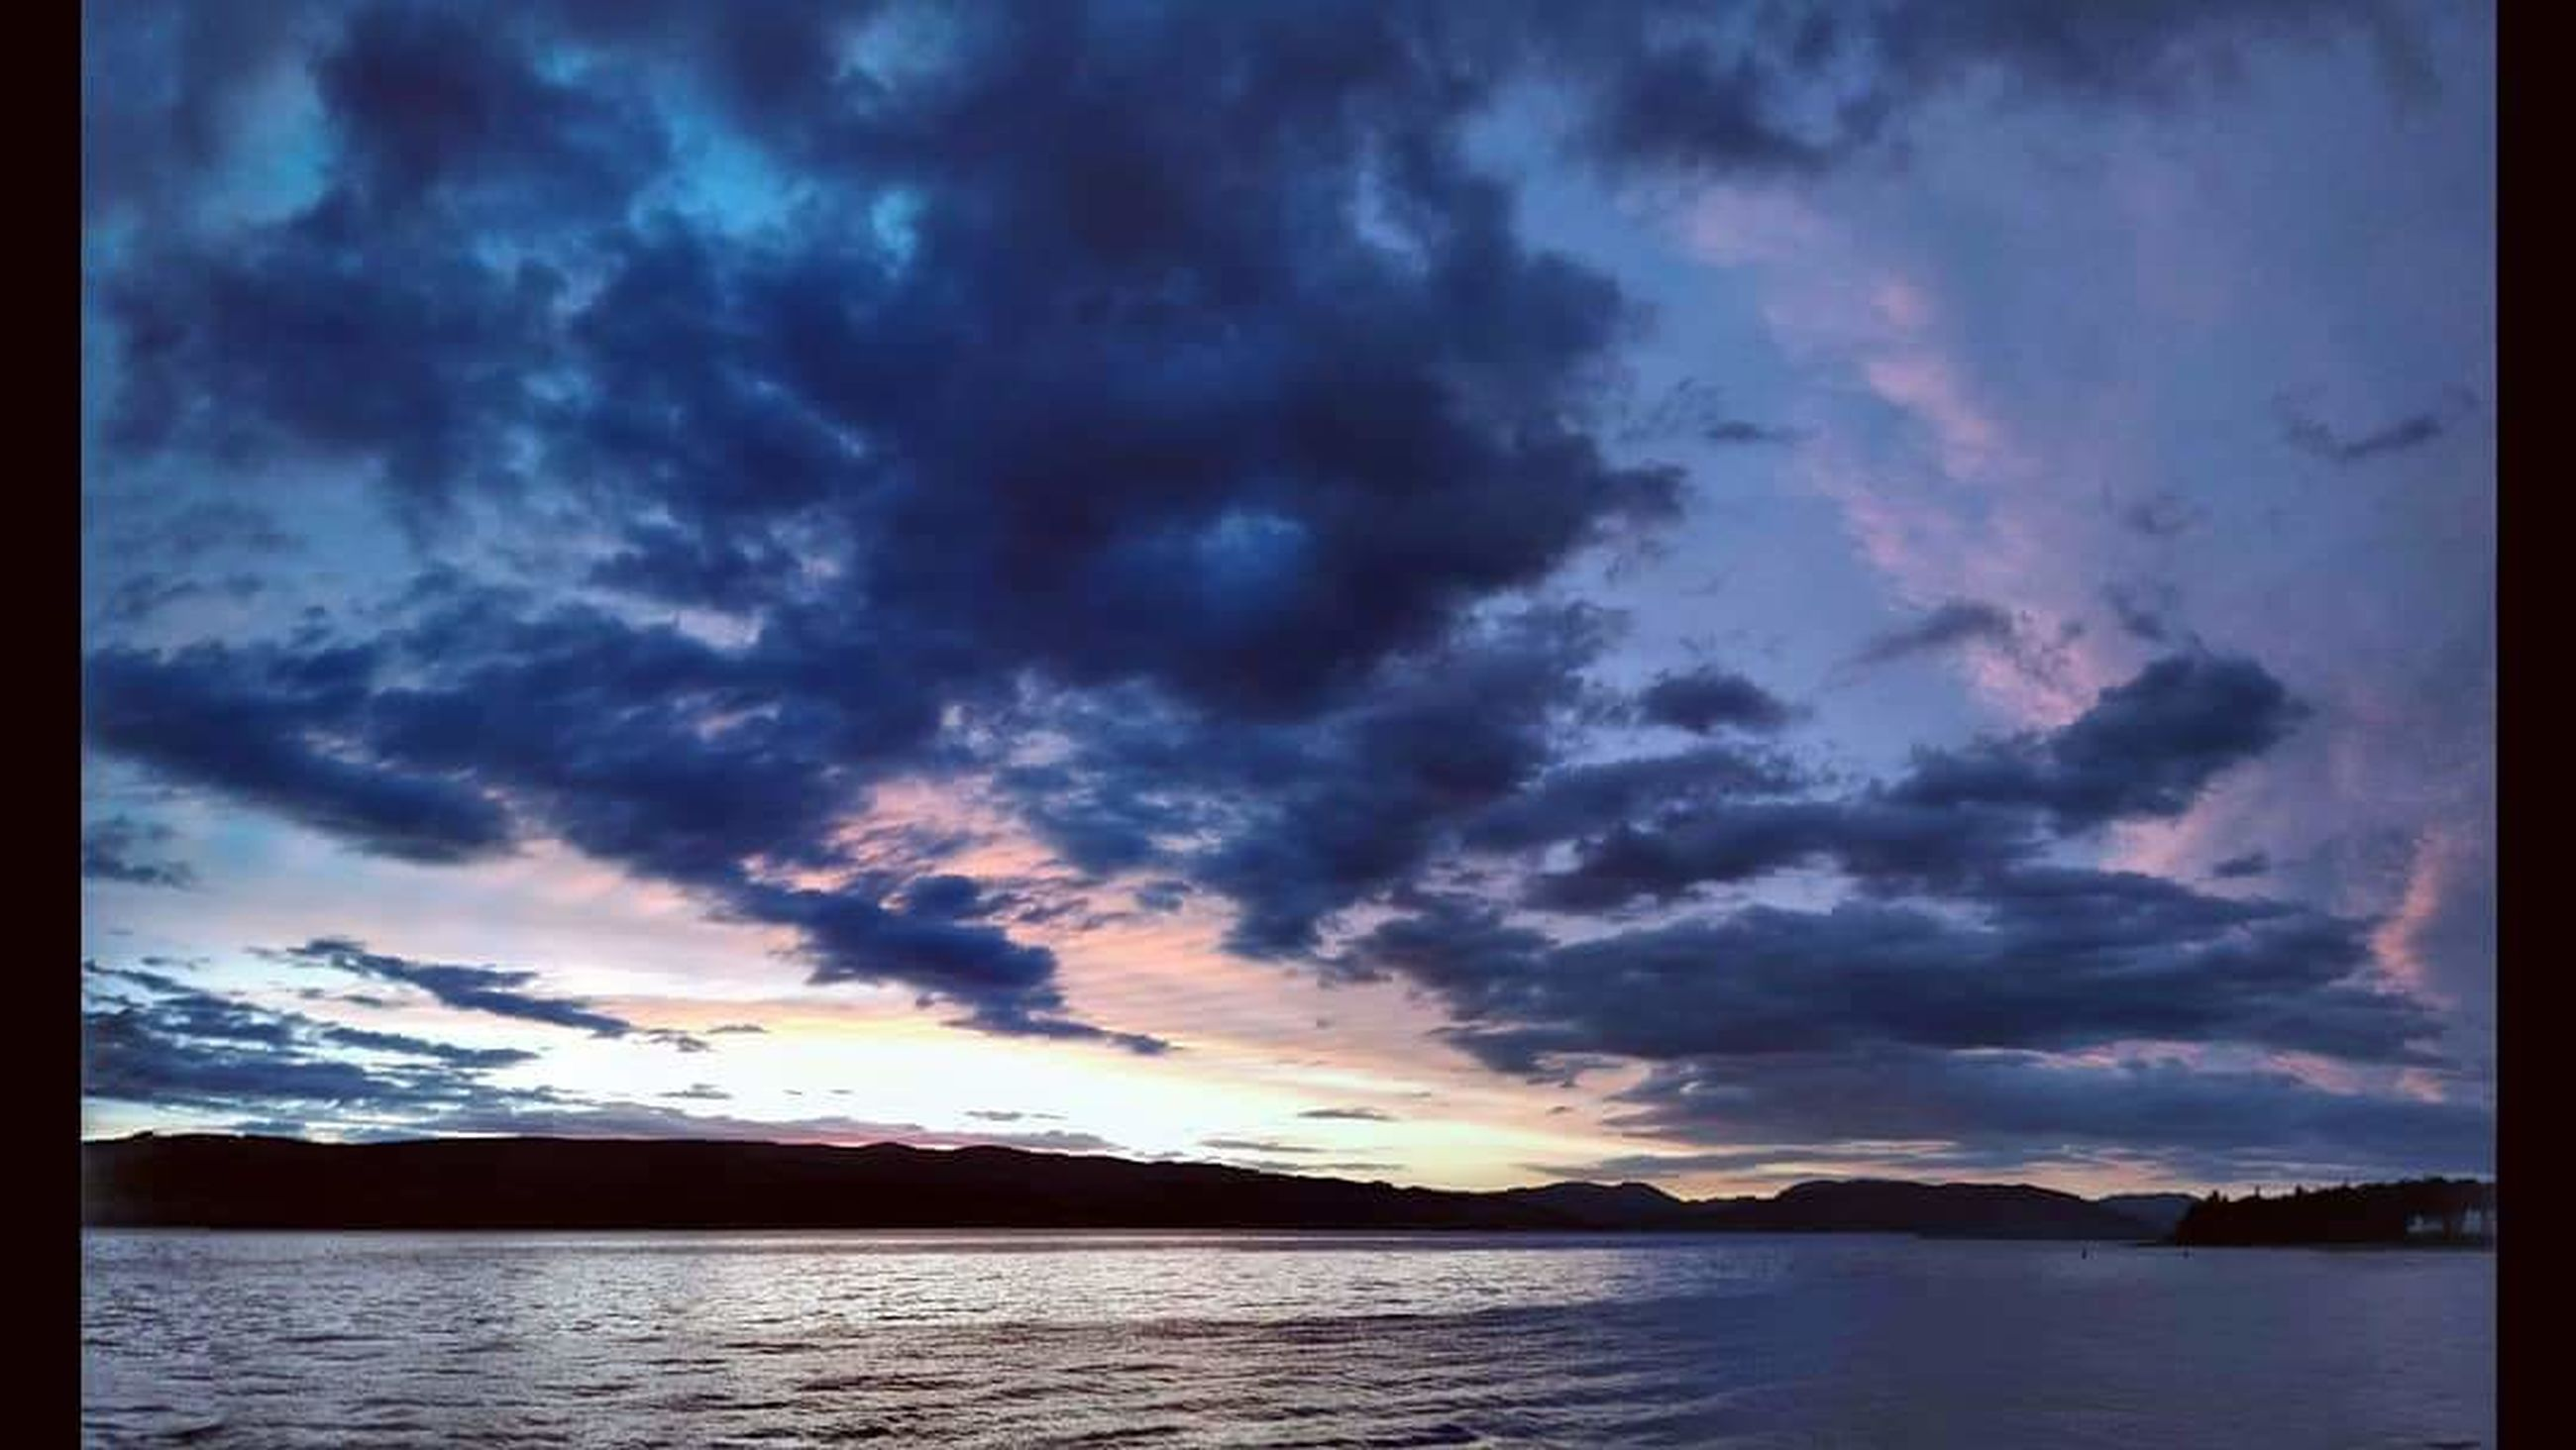 sky, cloud - sky, water, scenics - nature, beauty in nature, sunset, tranquil scene, tranquility, sea, dramatic sky, mountain, nature, no people, idyllic, cloudscape, storm, moody sky, silhouette, outdoors, dark